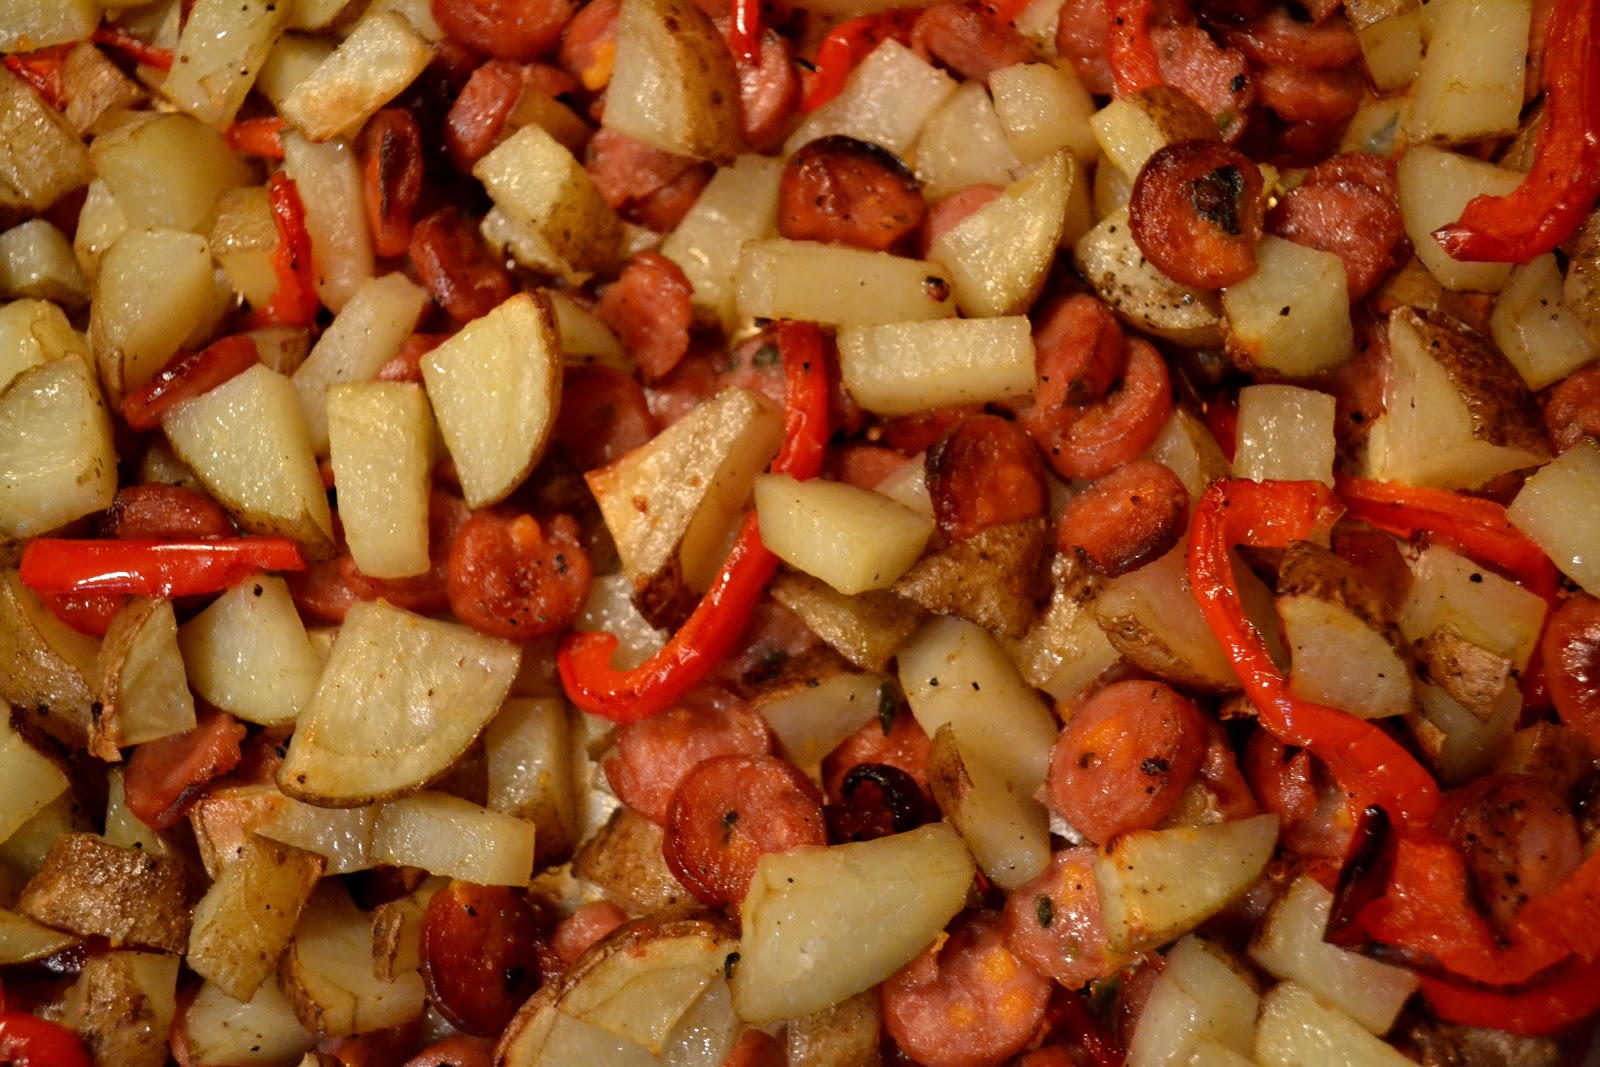 Simple Savory & Satisfying: Roasted Sausage, Potatoes, and Peppers